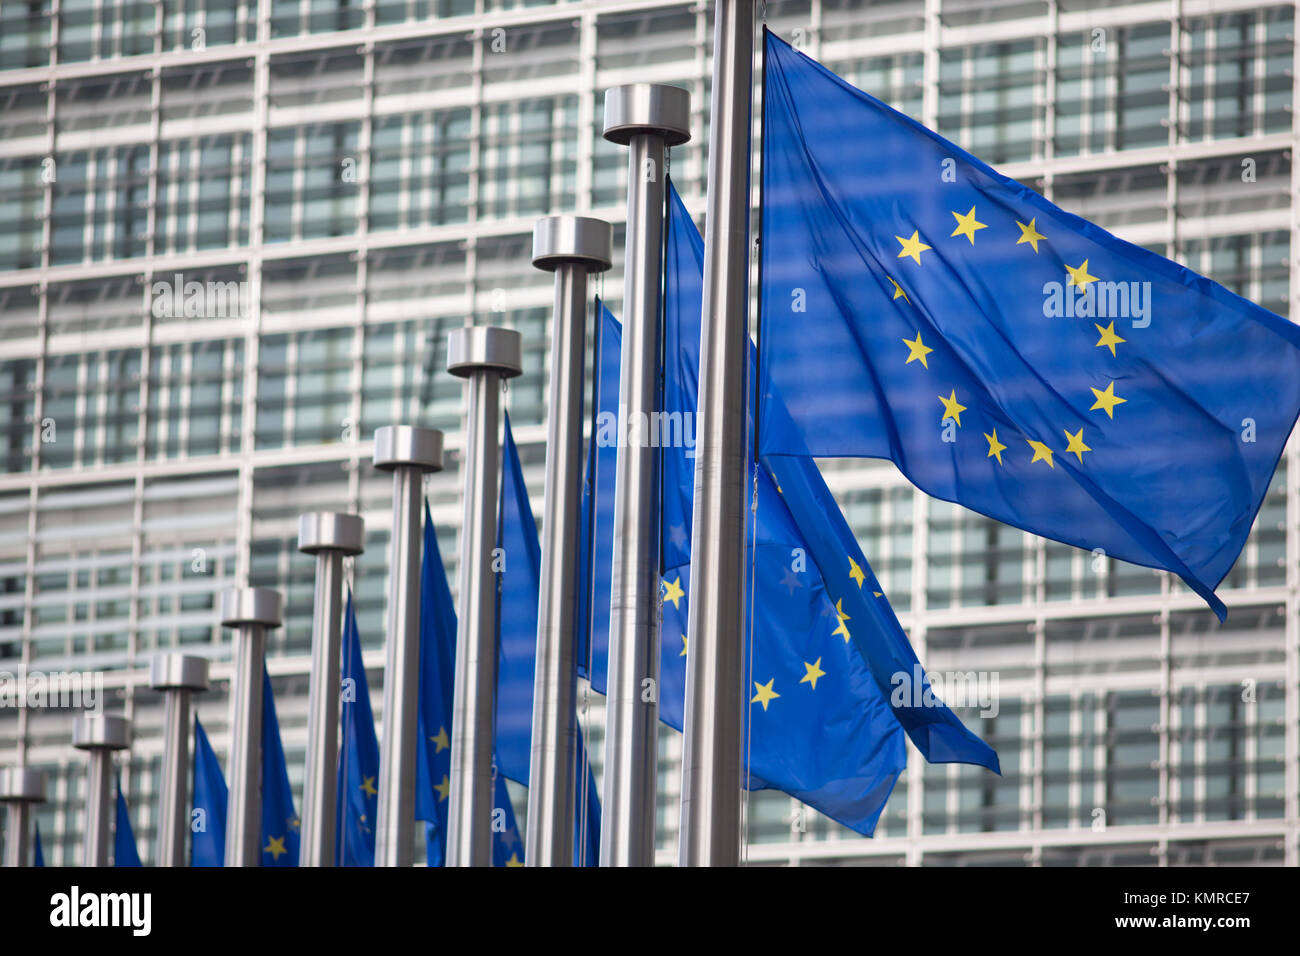 European Commission EU flags in Brussels Stock Photo